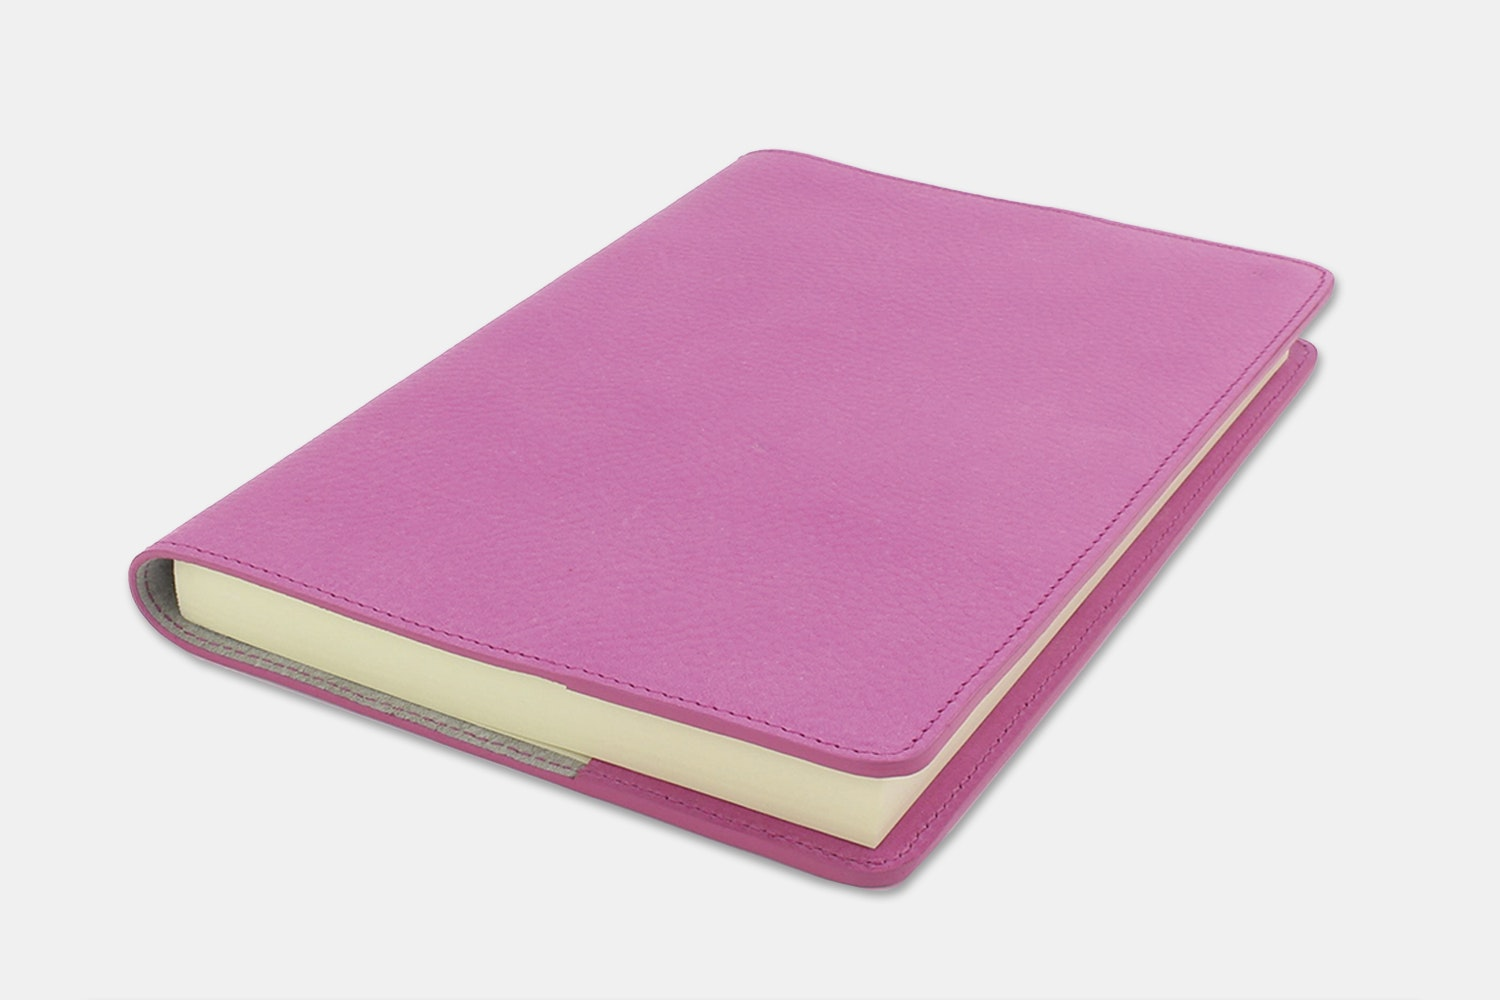 Notebook Cover - Pink/Gray  (+ $30)